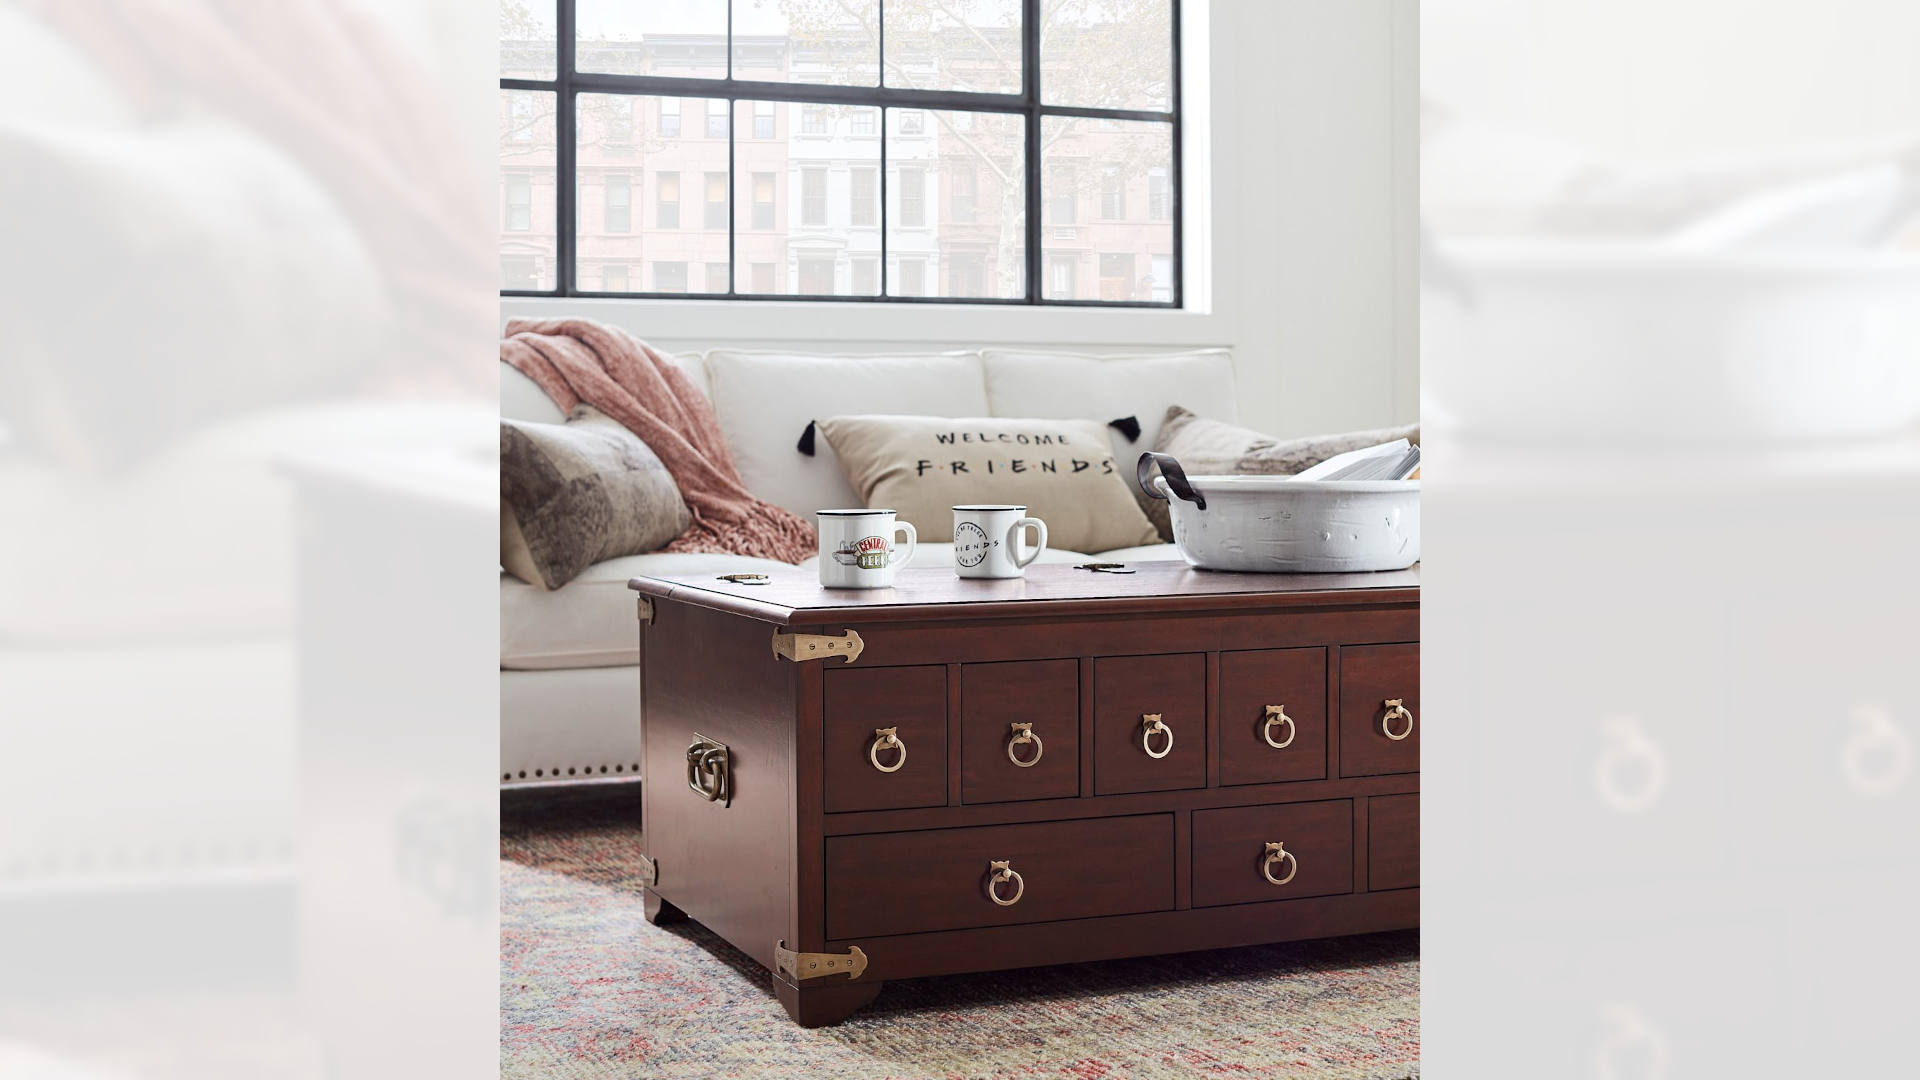 Pottery Barn Releases Its Friends Inspired Collection Kxly